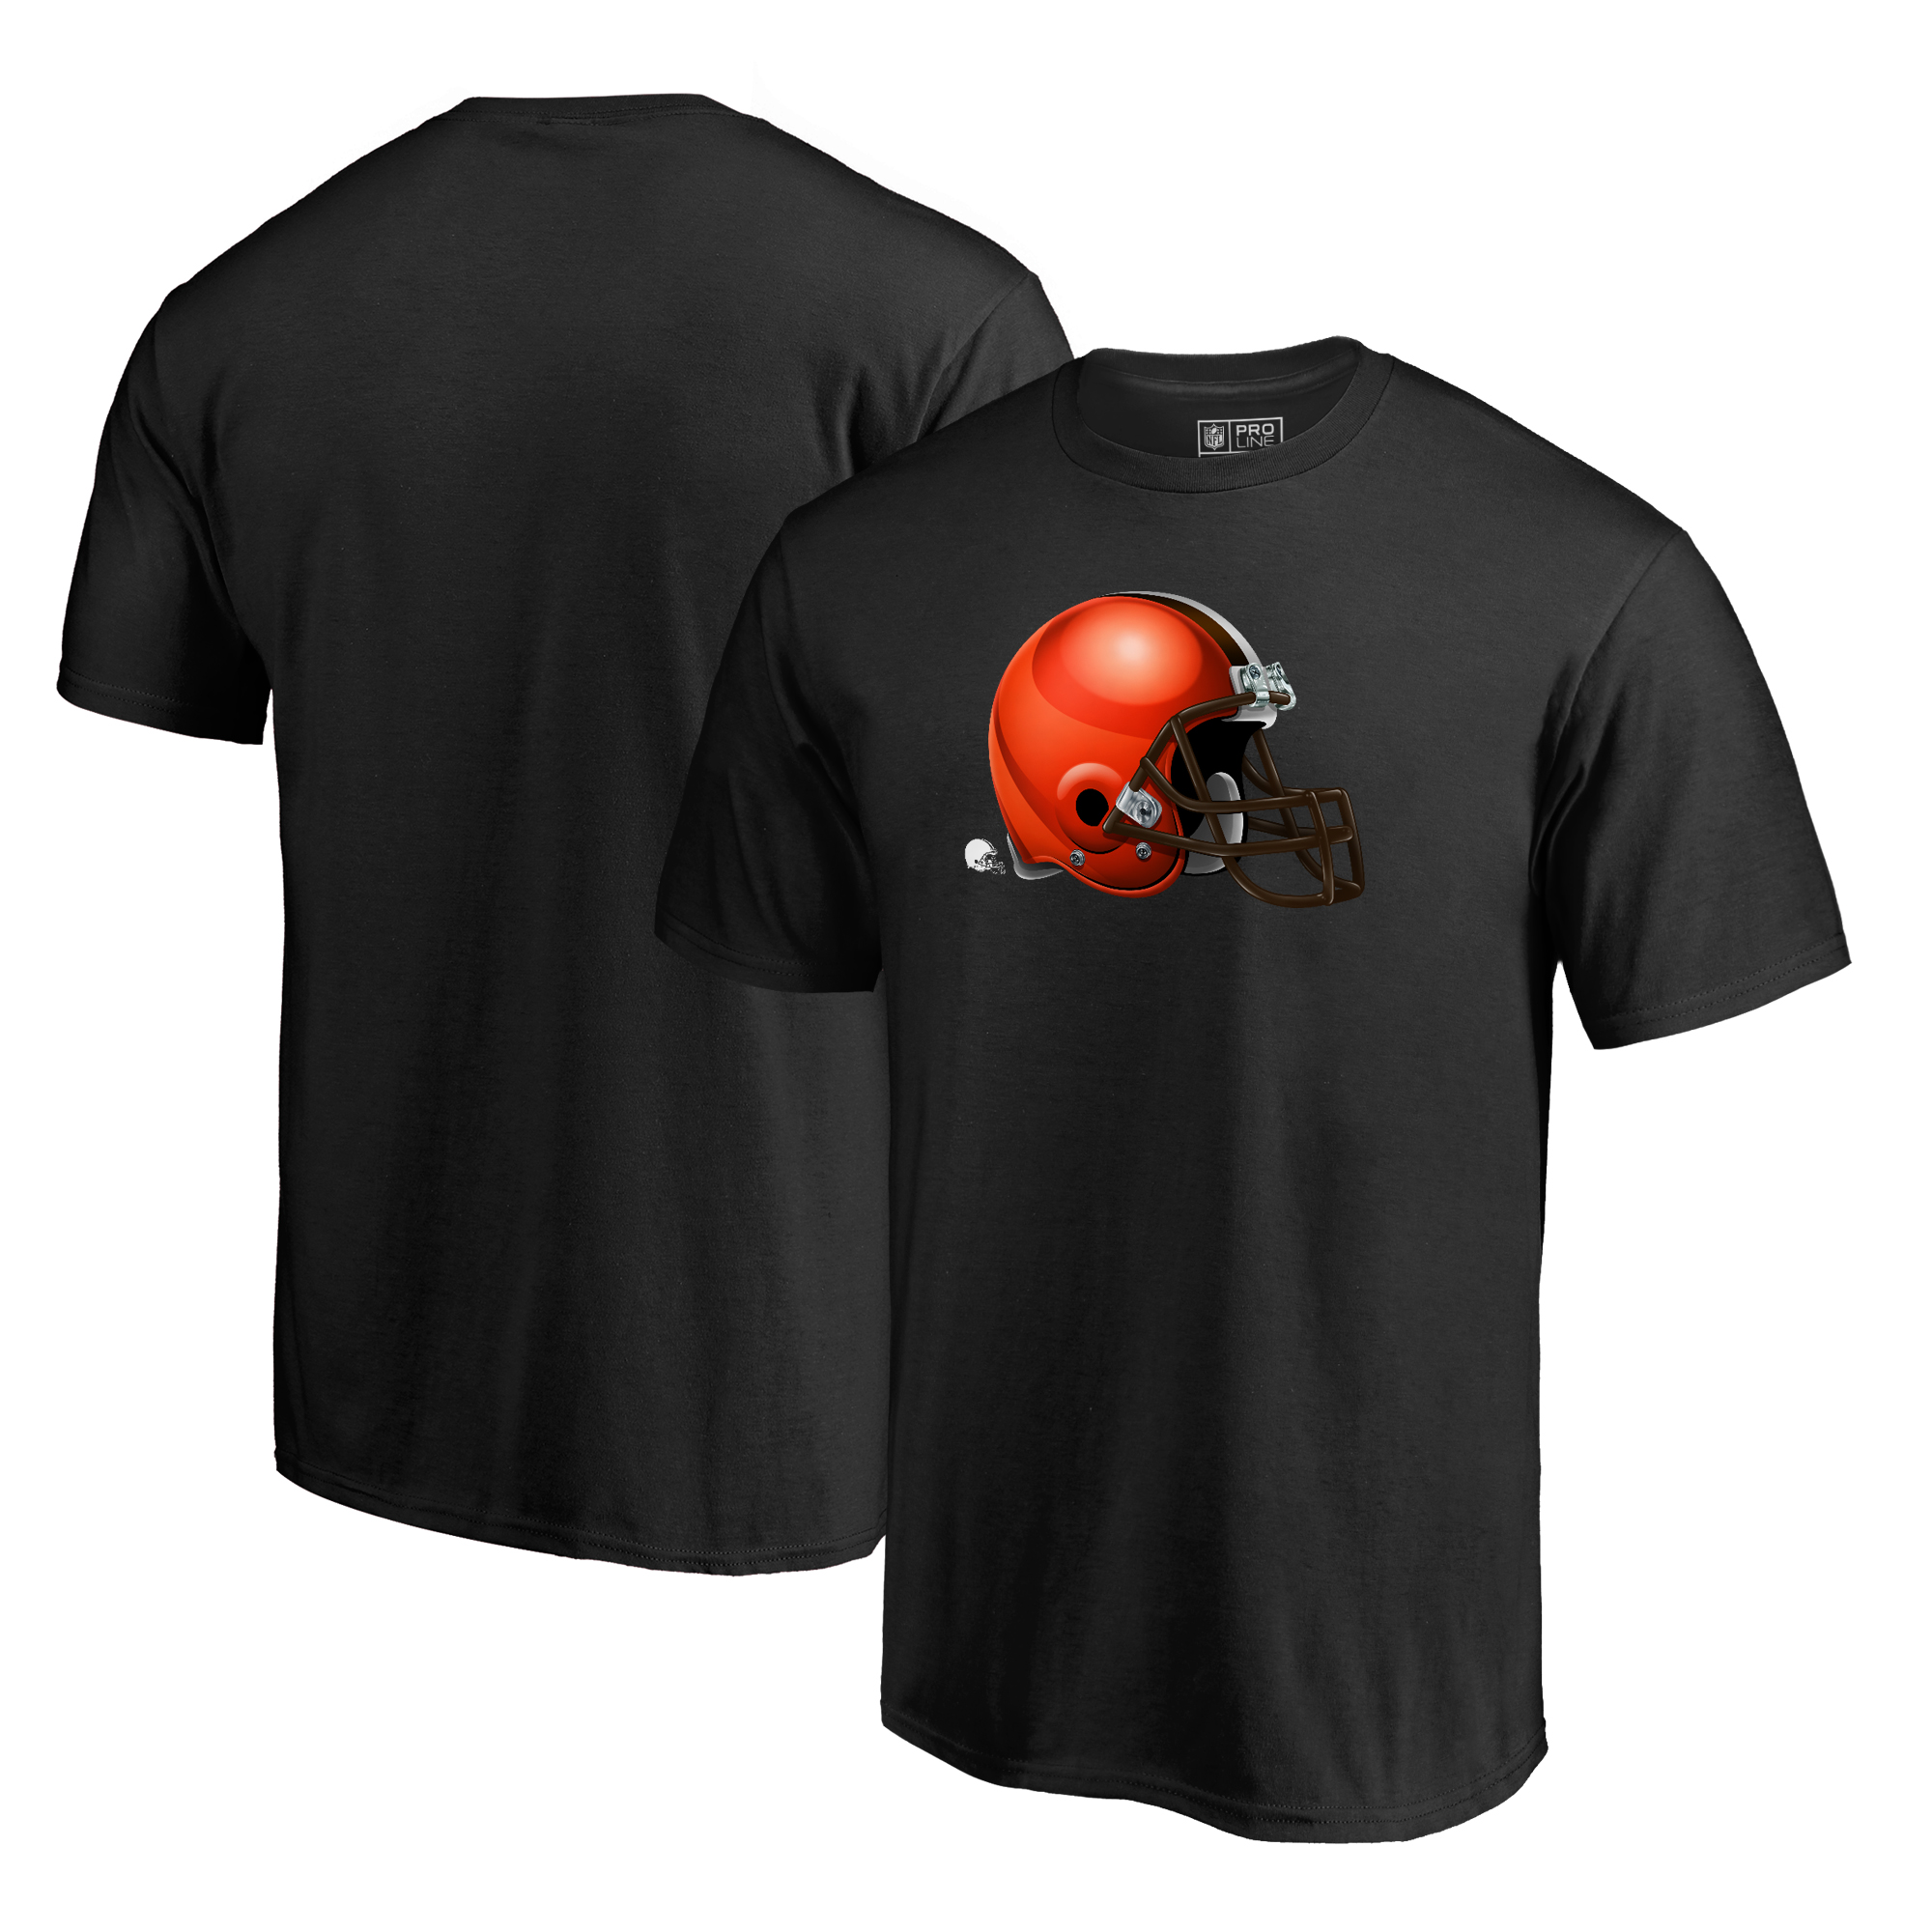 Cleveland Browns NFL Pro Line by Fanatics Branded Midnight Mascot Big and Tall T-Shirt - Black